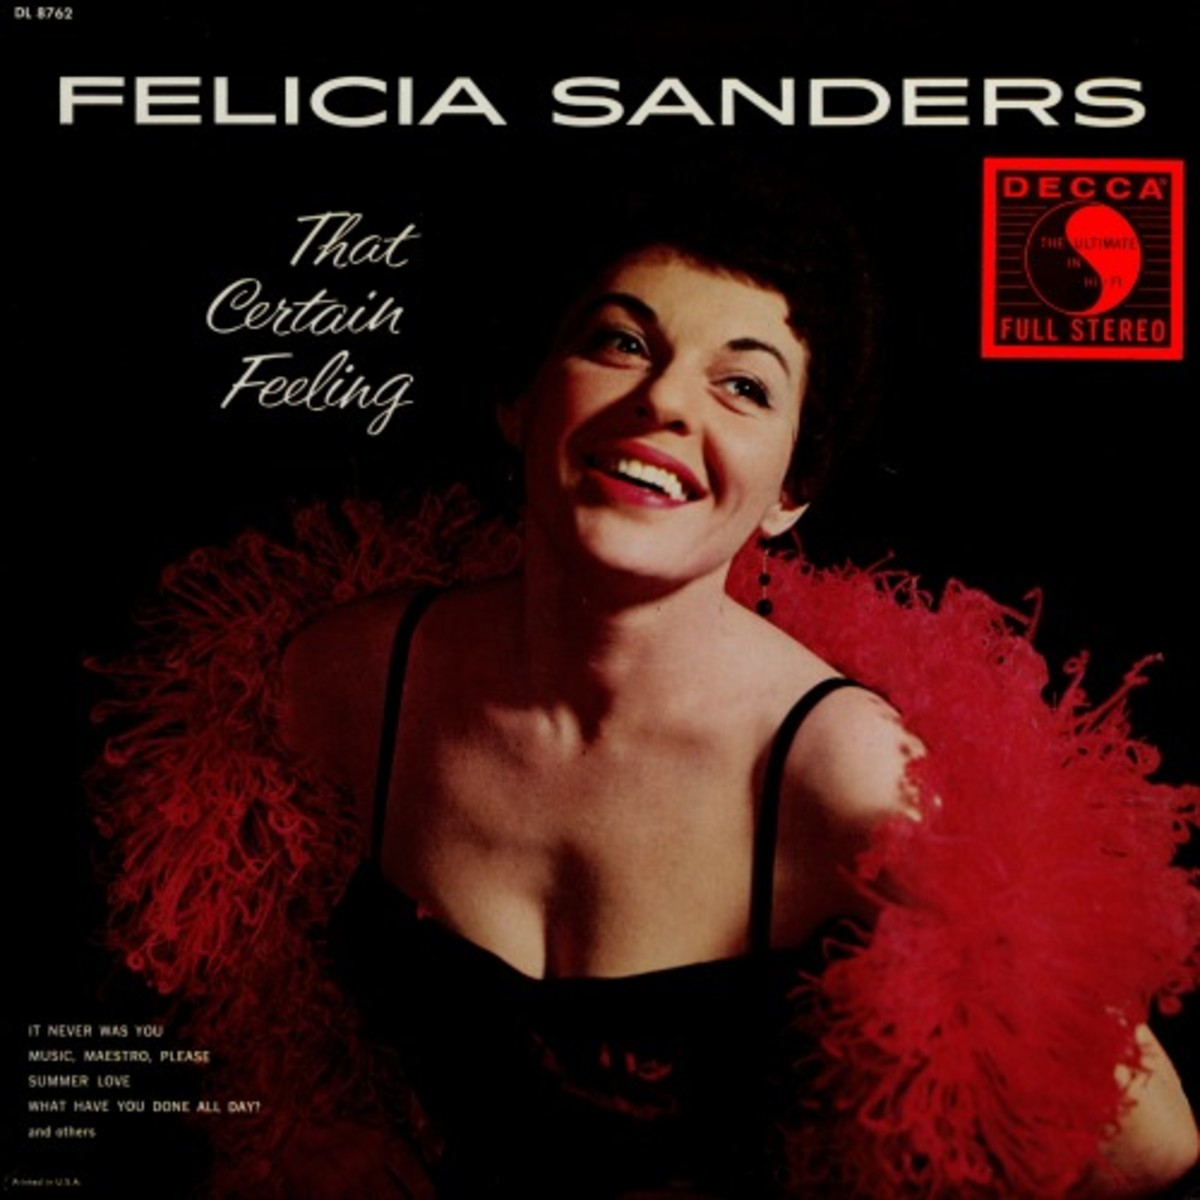 Felicia Sanders first introduced the song to the cabaret circuit in 1954 and subsequently did a recording herself in 1959